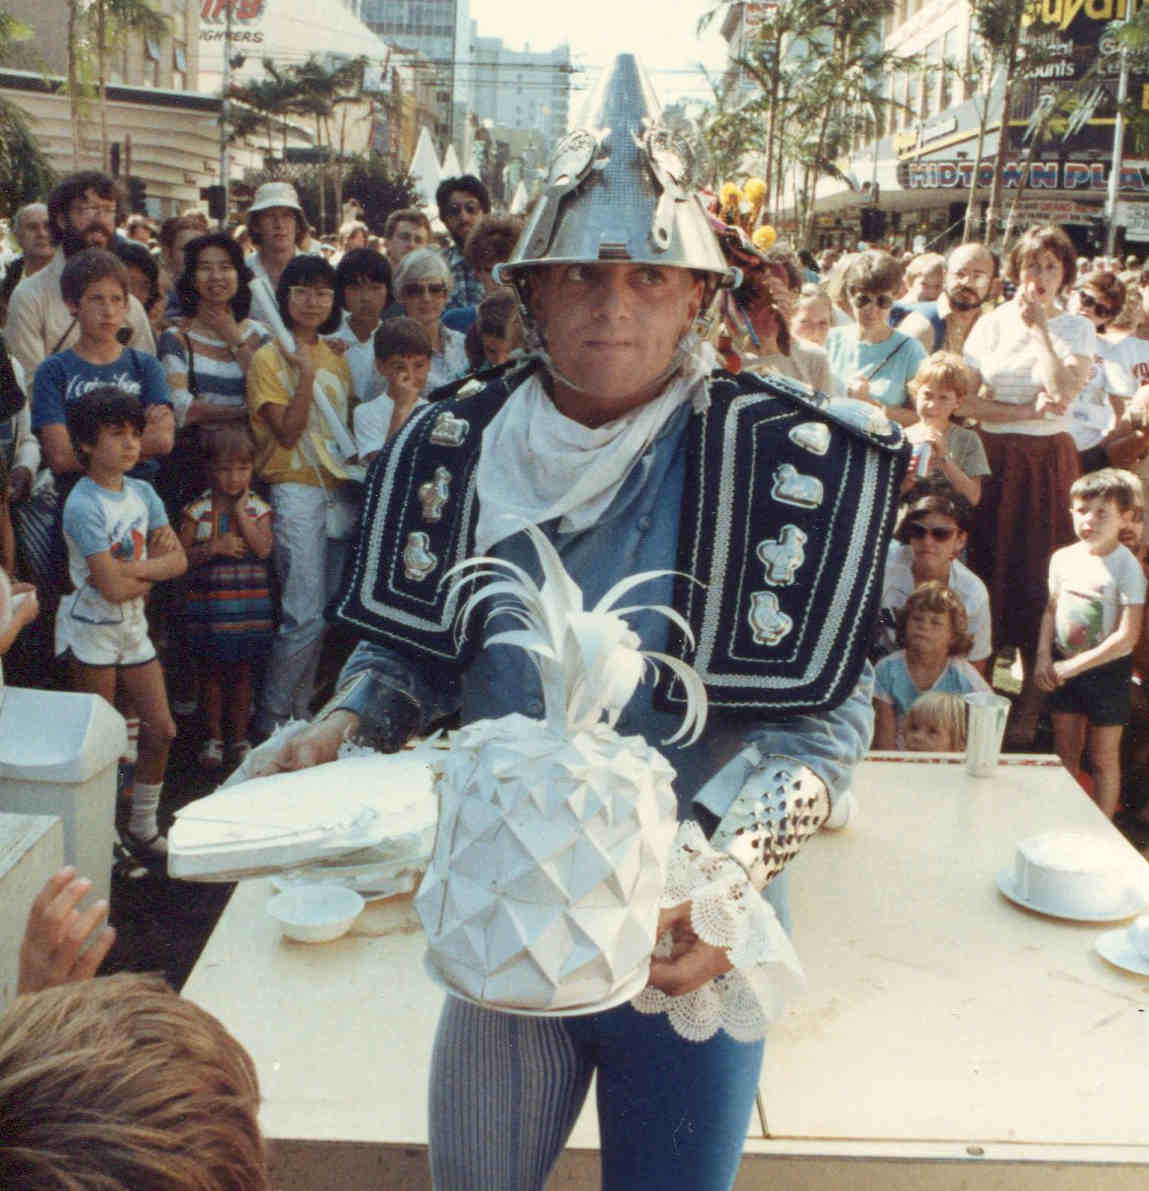 Handspan Theatre Guts costumed actor in blue with colander helmet holding white cardboard pineapple